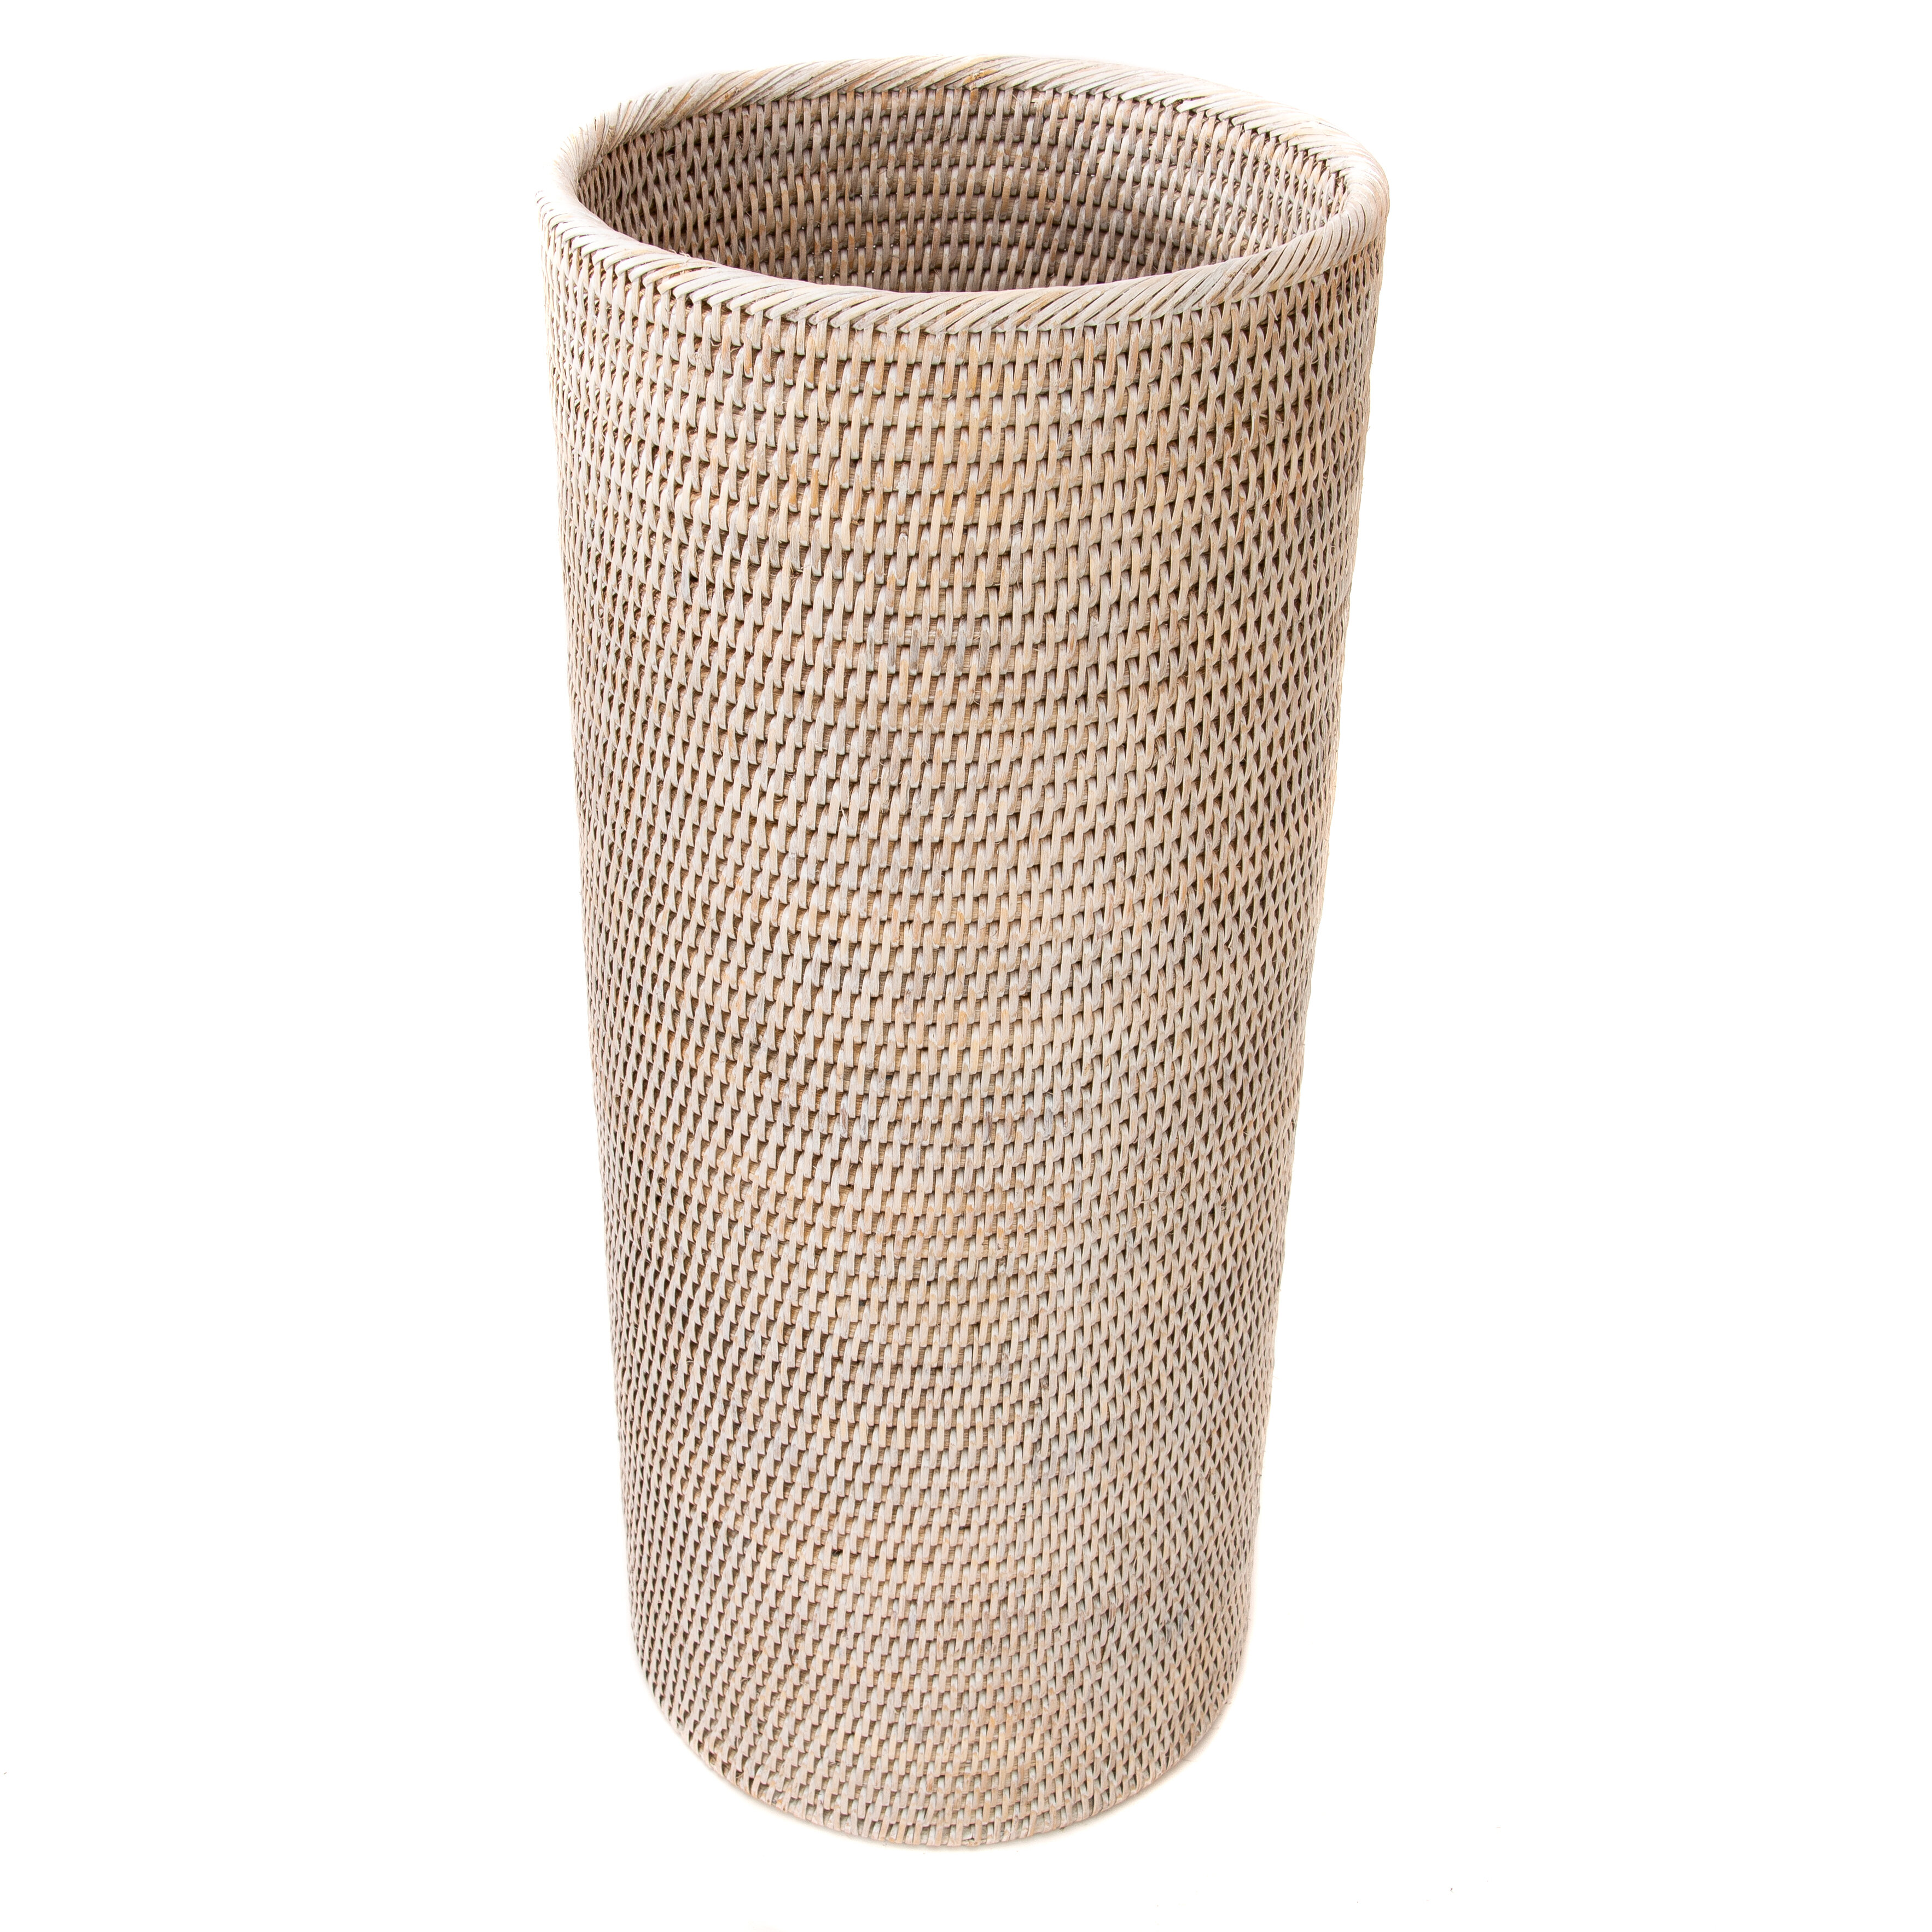 Basket Rattan Folding Wicker Handle Round Natural Sea Grass Plant Storage WoodBS